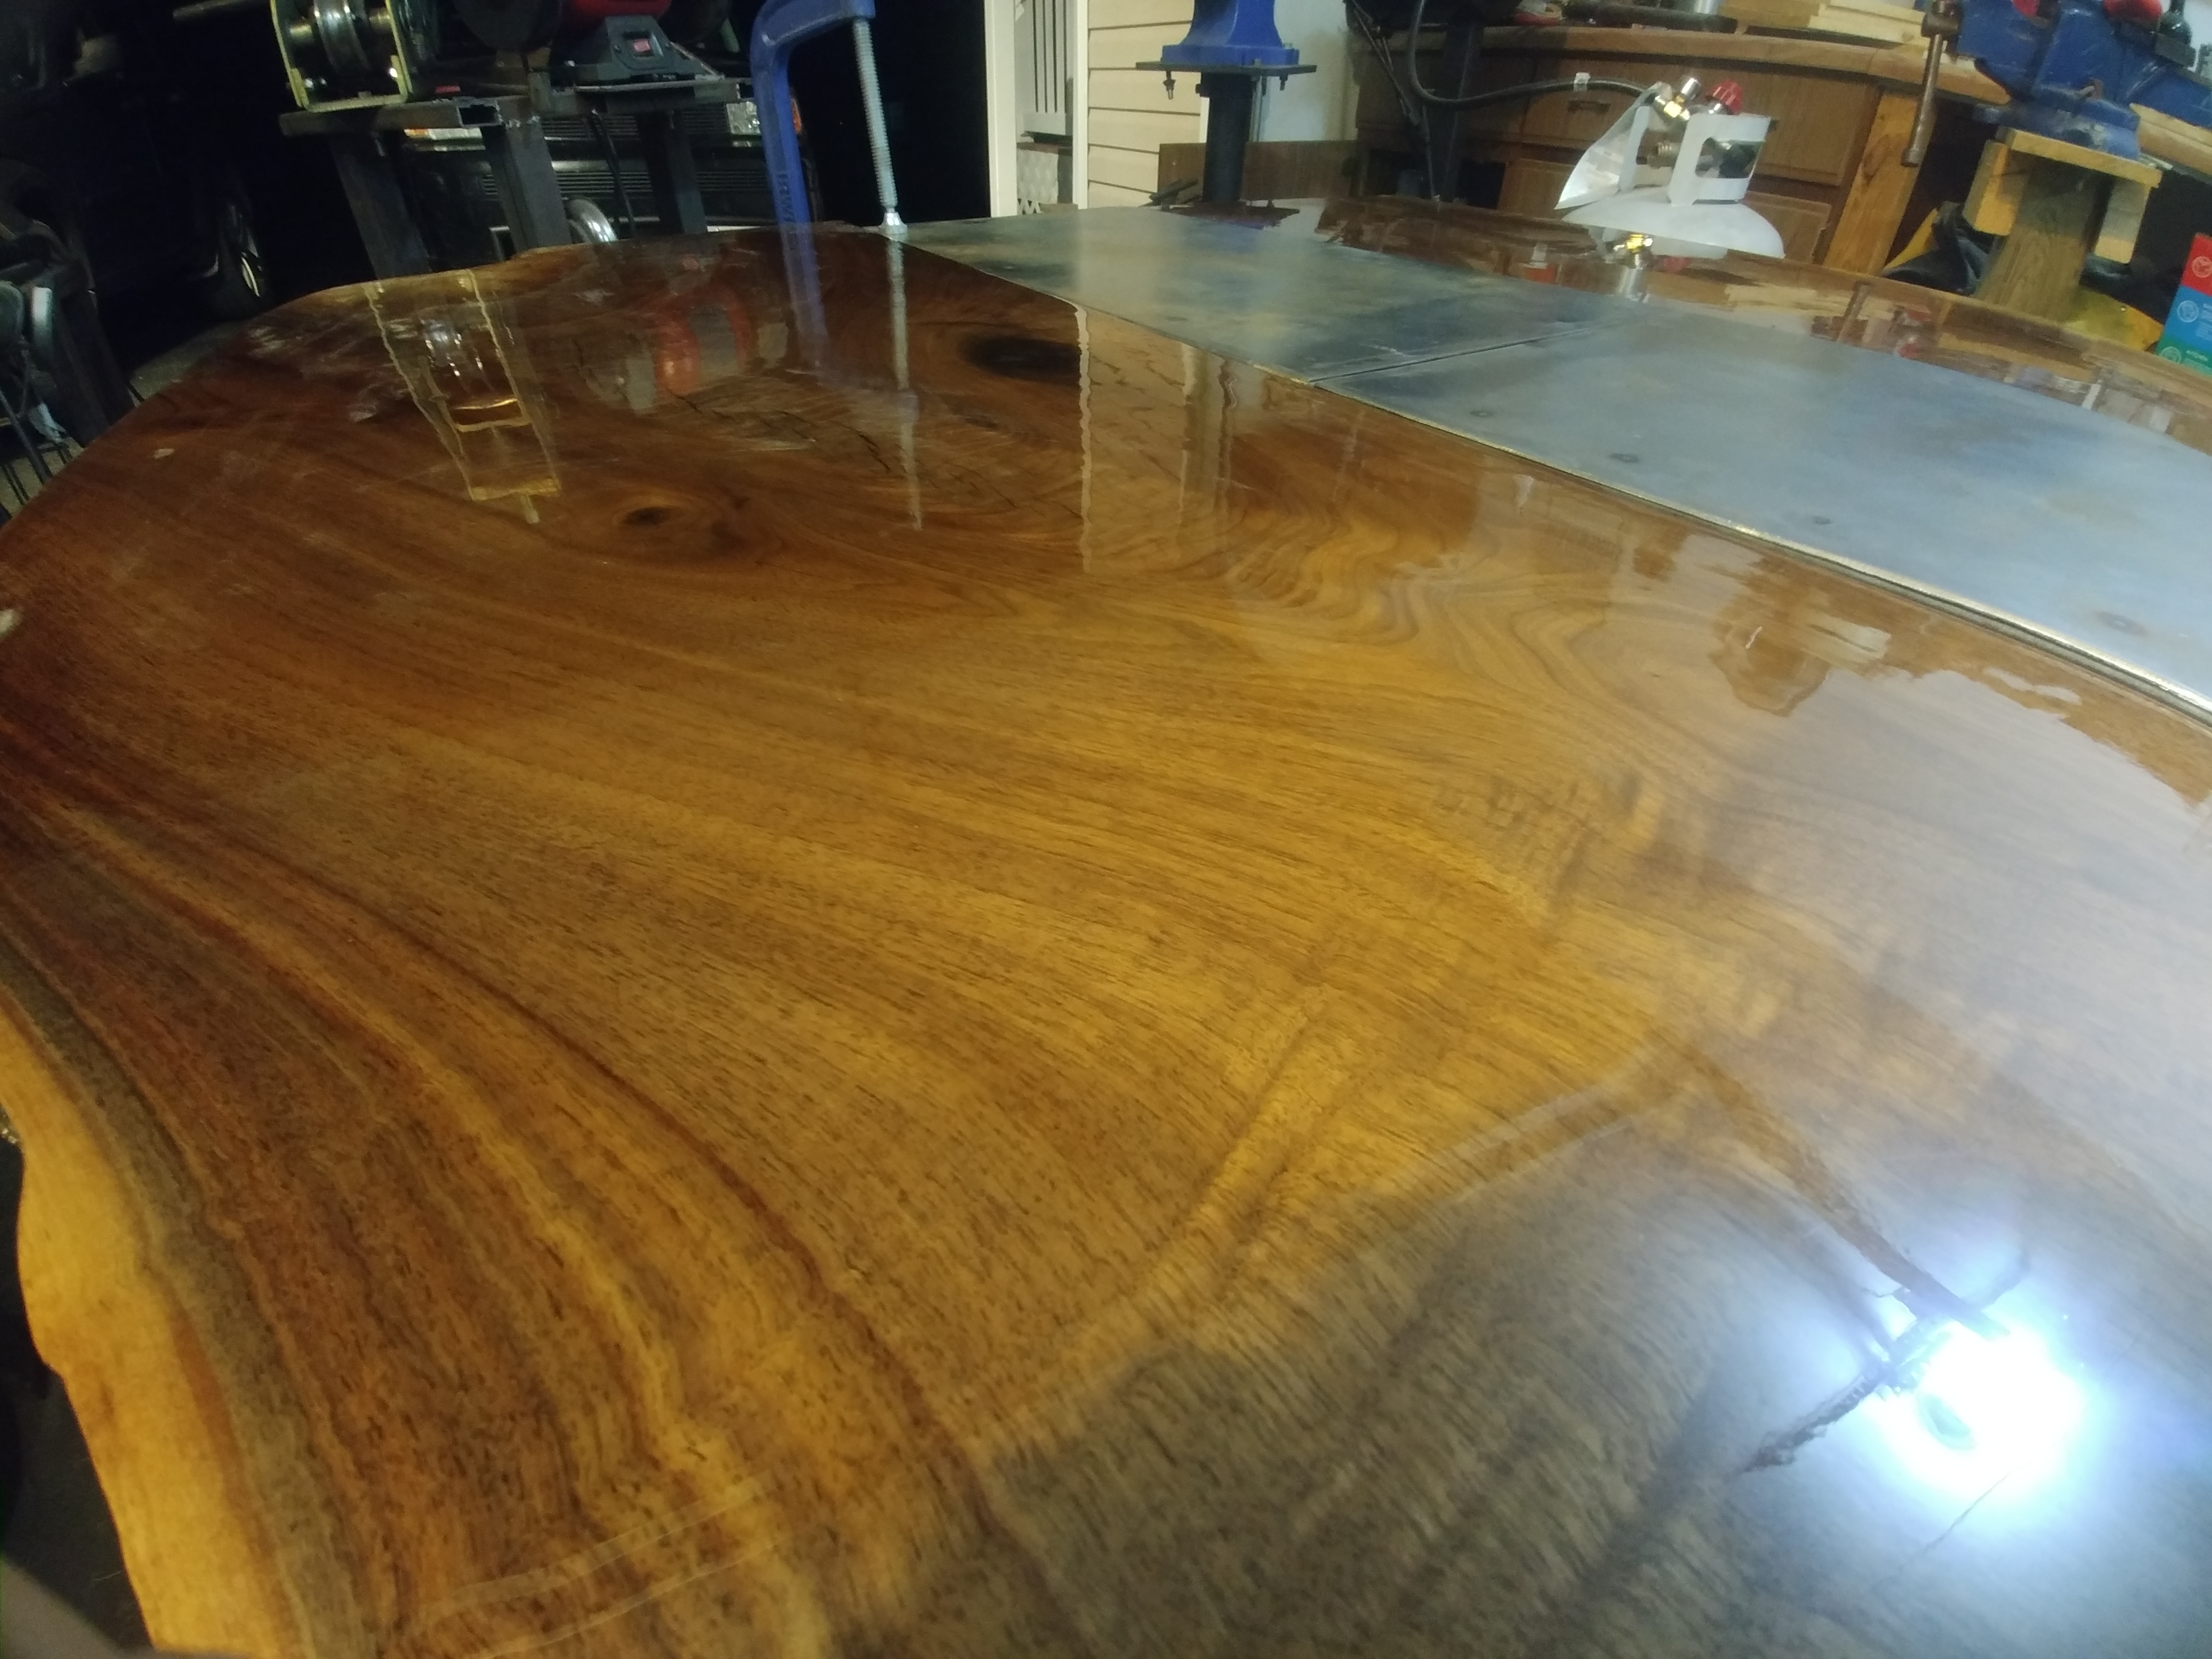 Picture of Second Layer of Epoxy